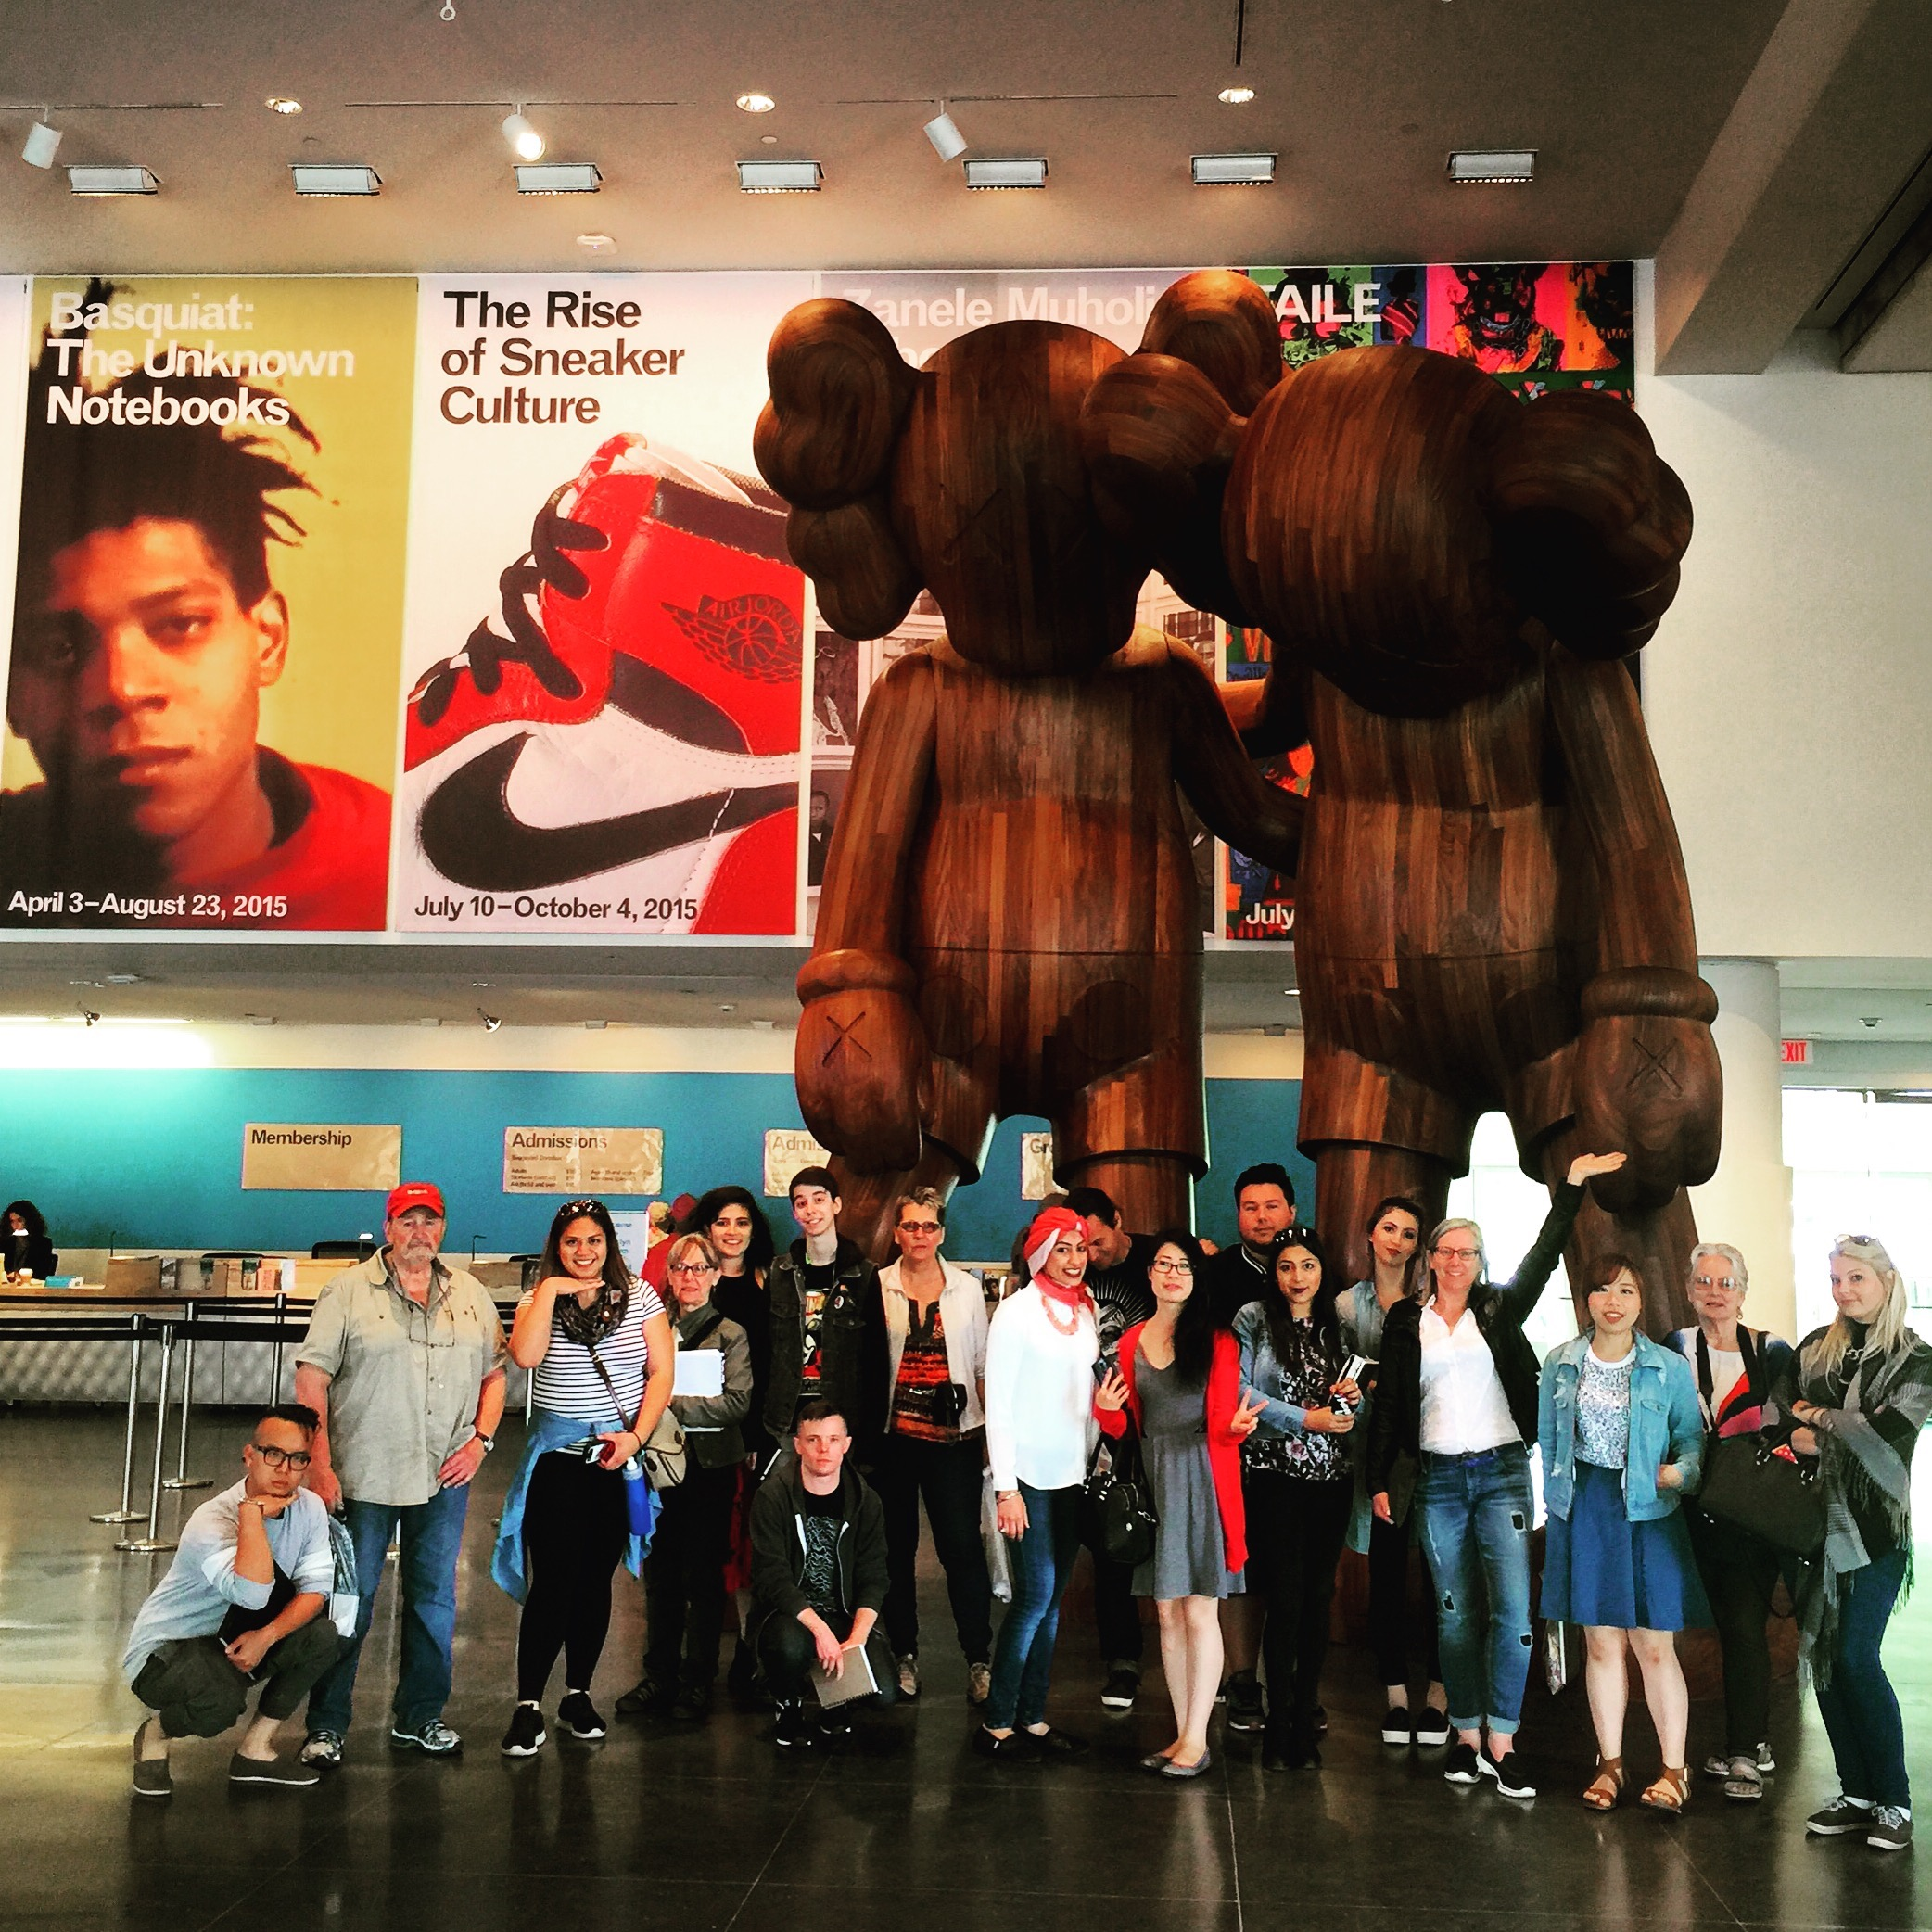 Group photo at the Brooklyn Museum-- Cathrina is the third person from the right in the right hand side of the photograph.